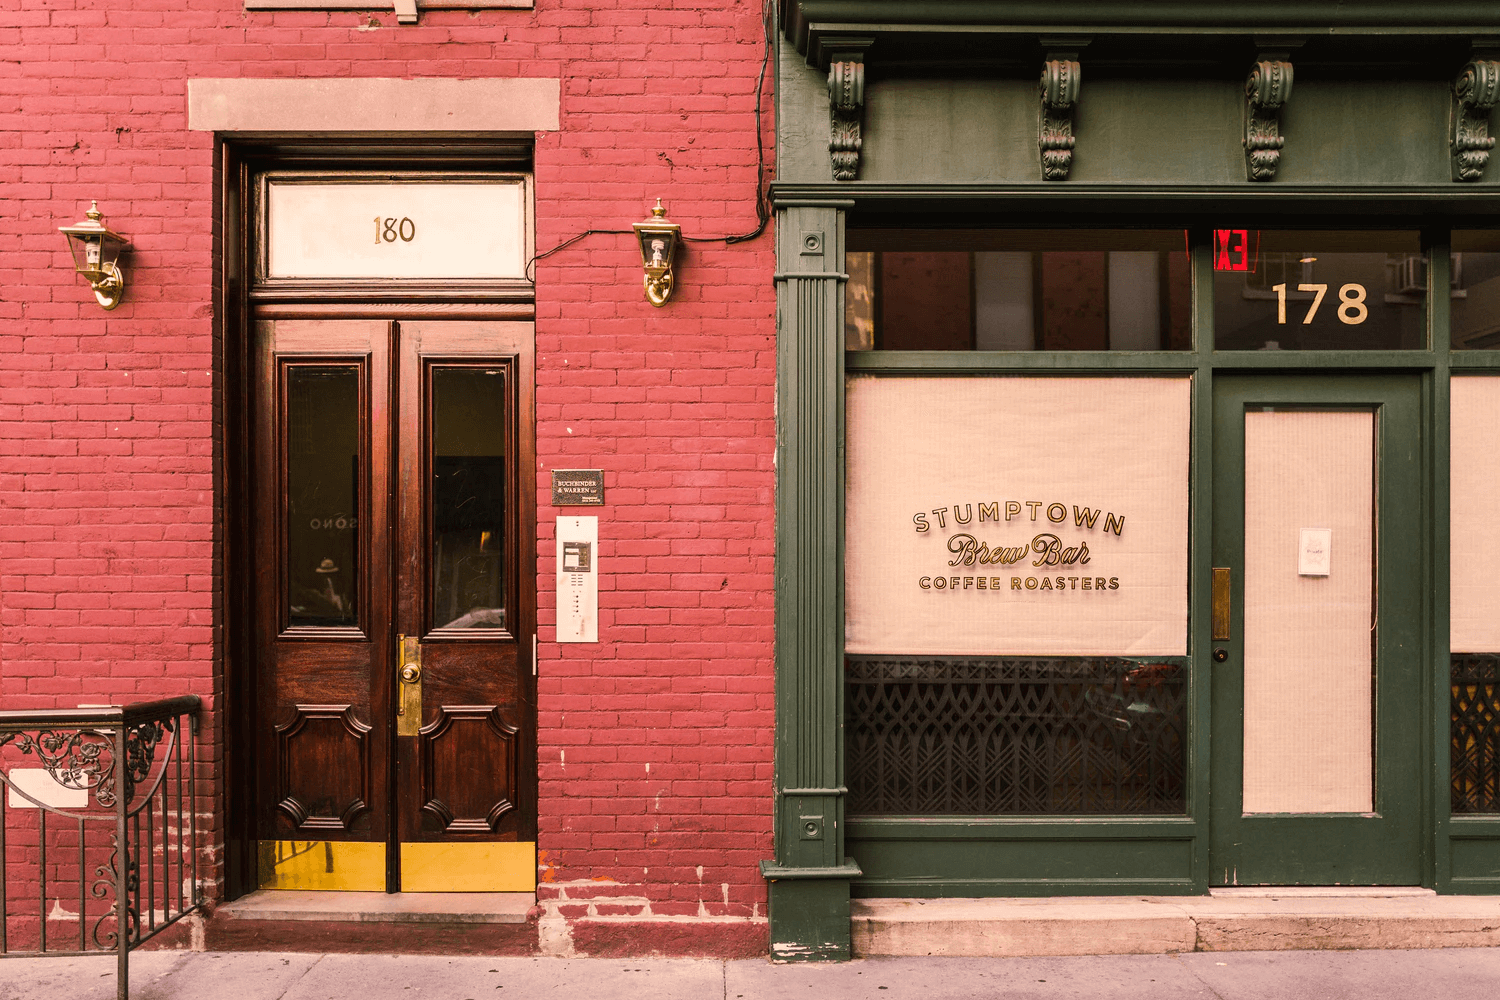 Storefront with red bricks